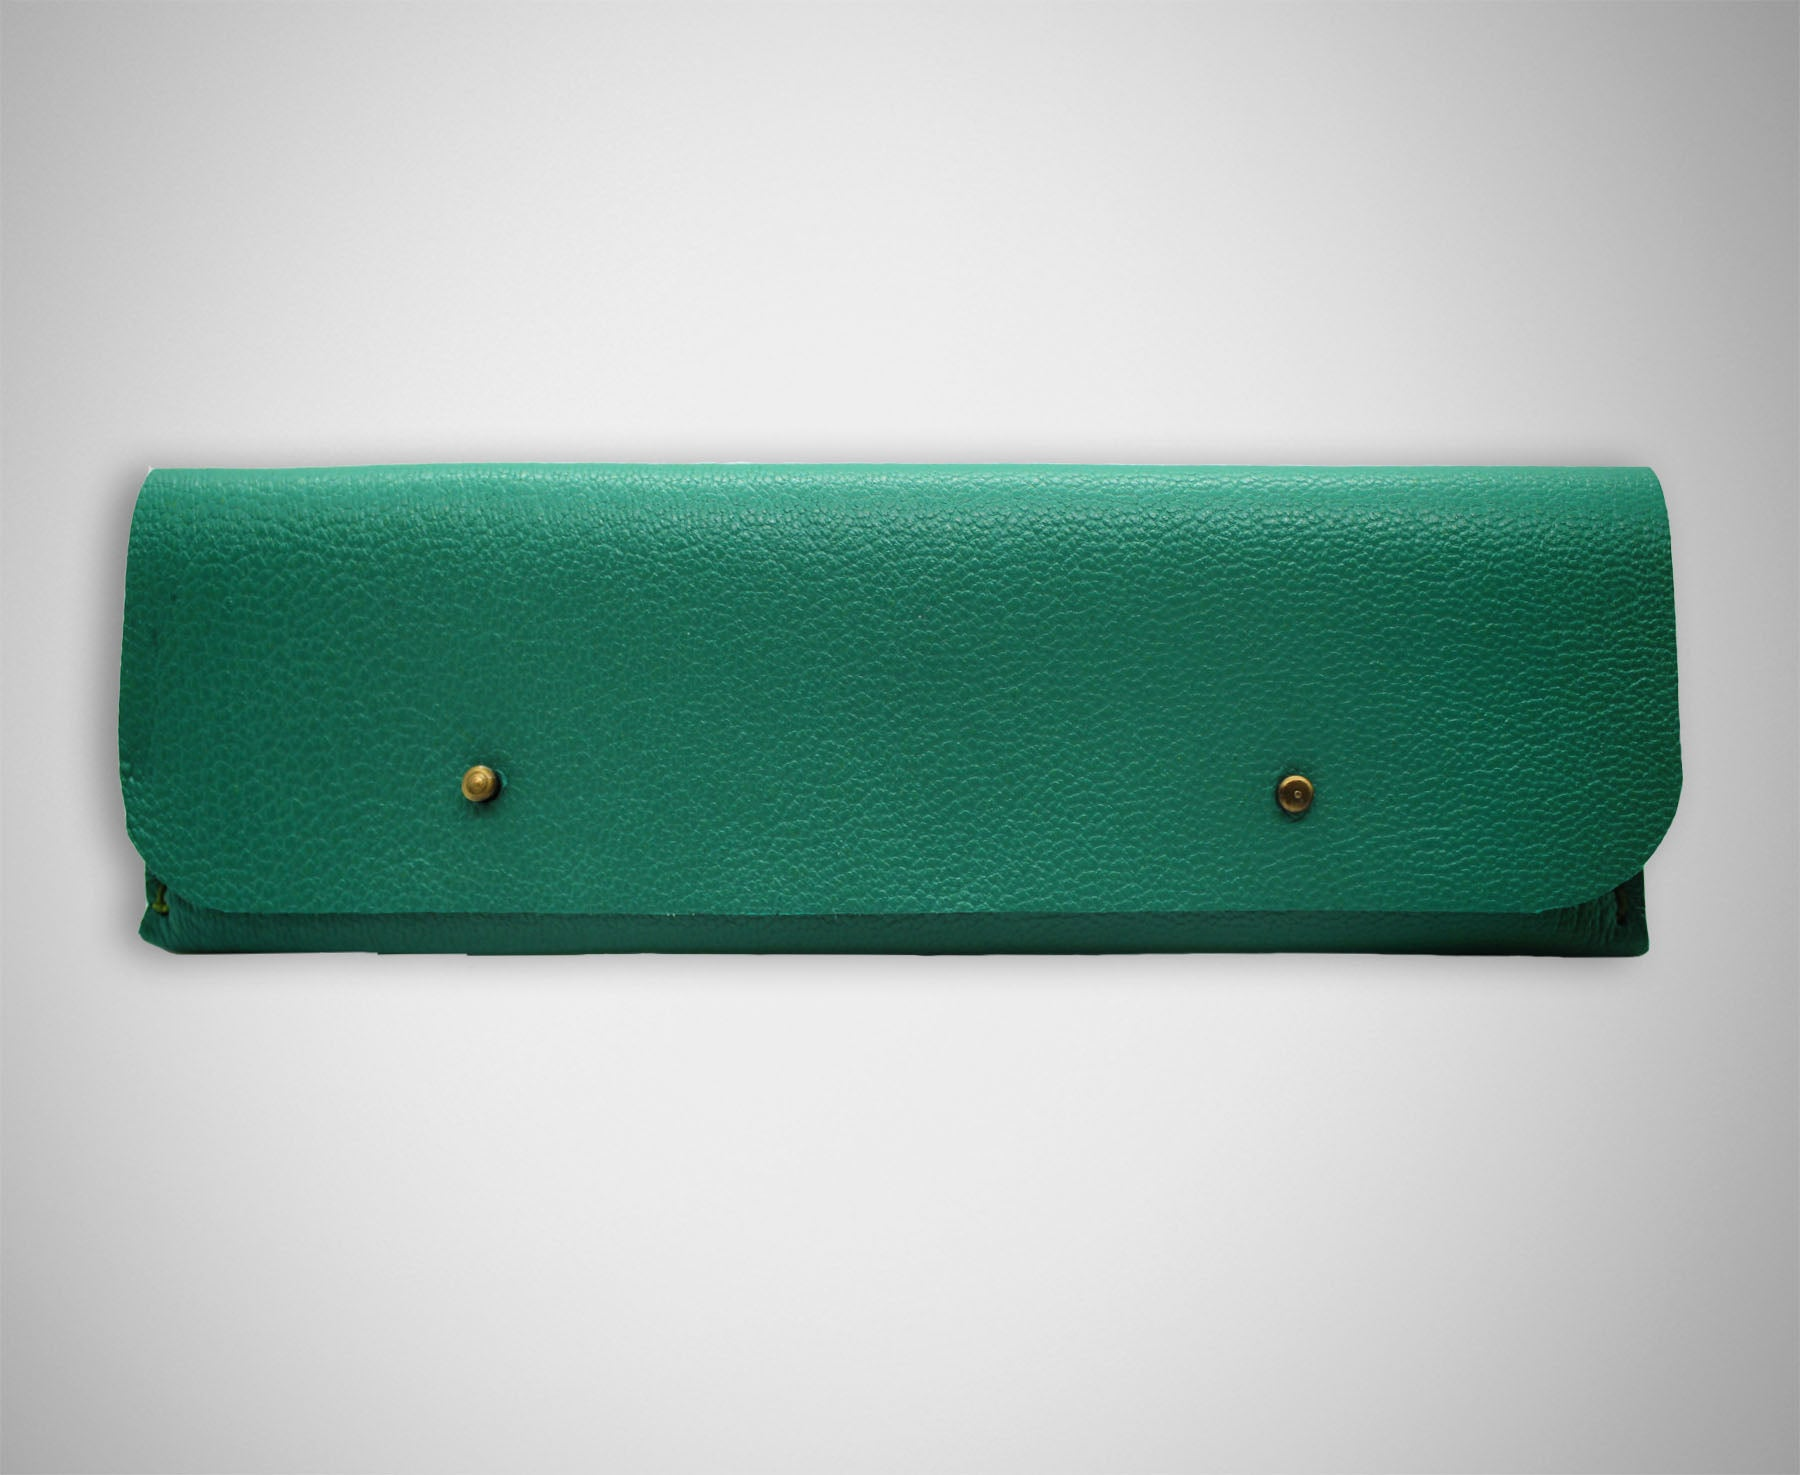 ARKWARD TEAL LEATHER PEN POUCH